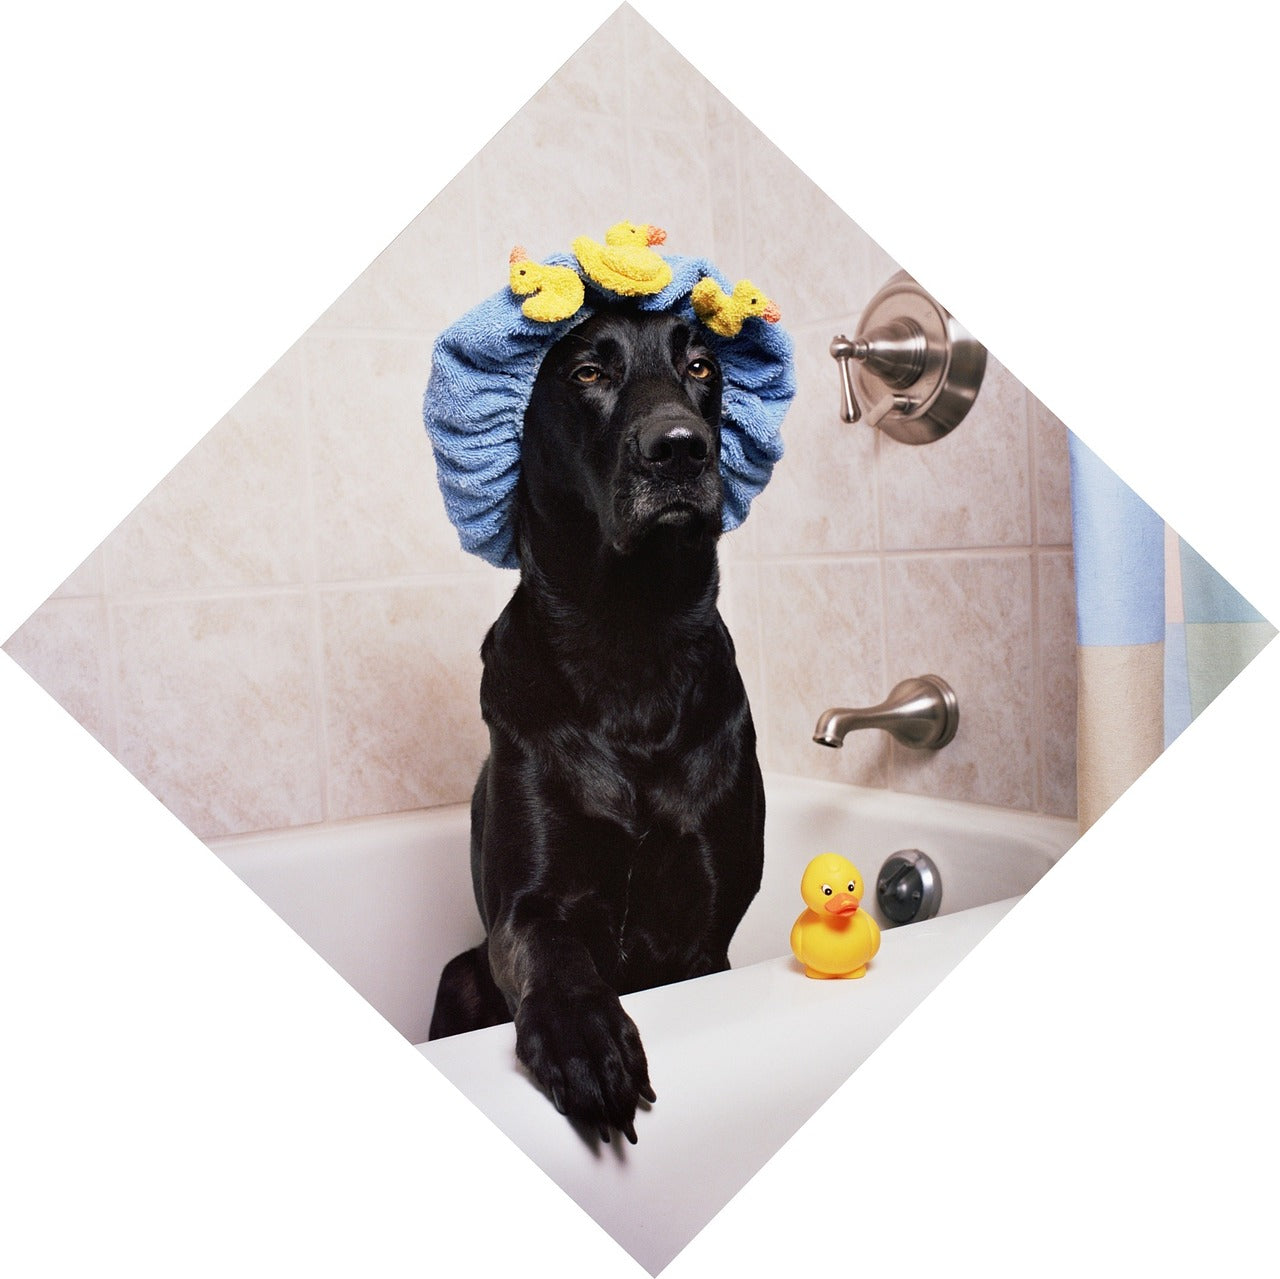 How to bath a dog to get rid of fleas